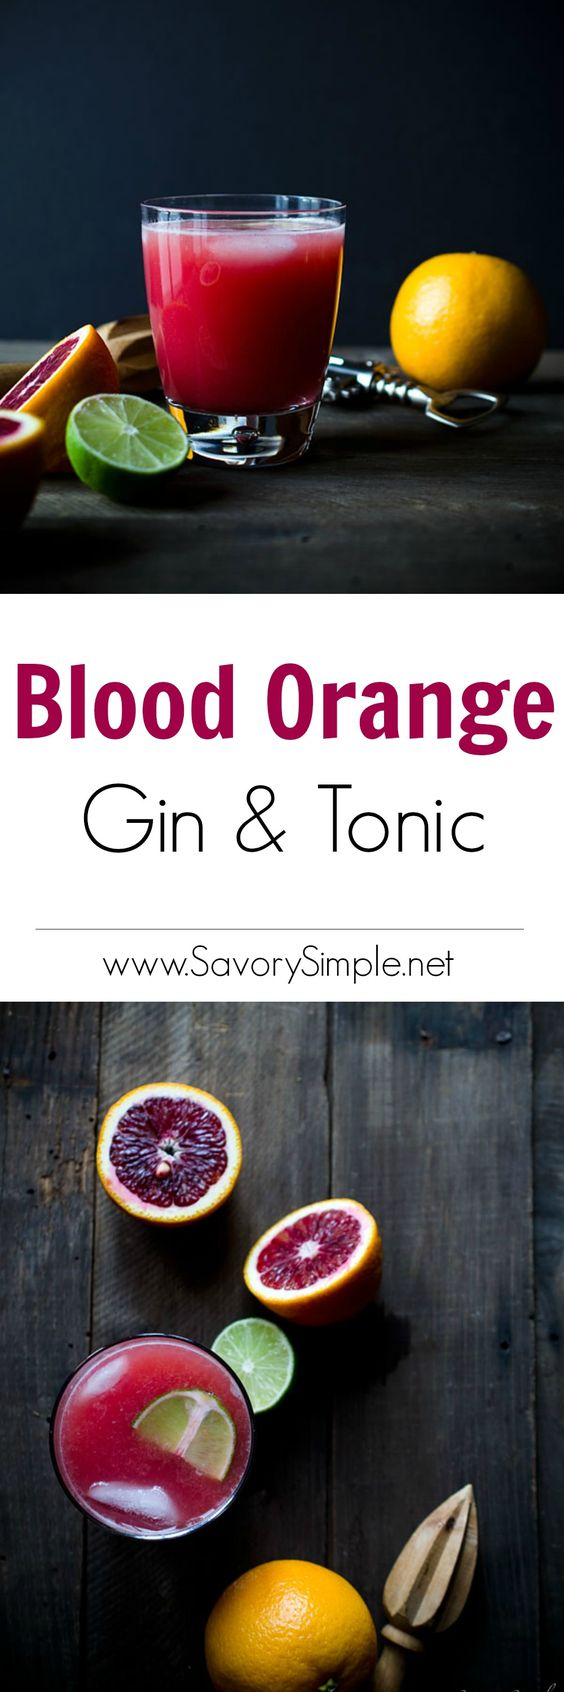 ... sinaasappelsap kopjes gin gin tonic bloed whole foods limoenen oranje